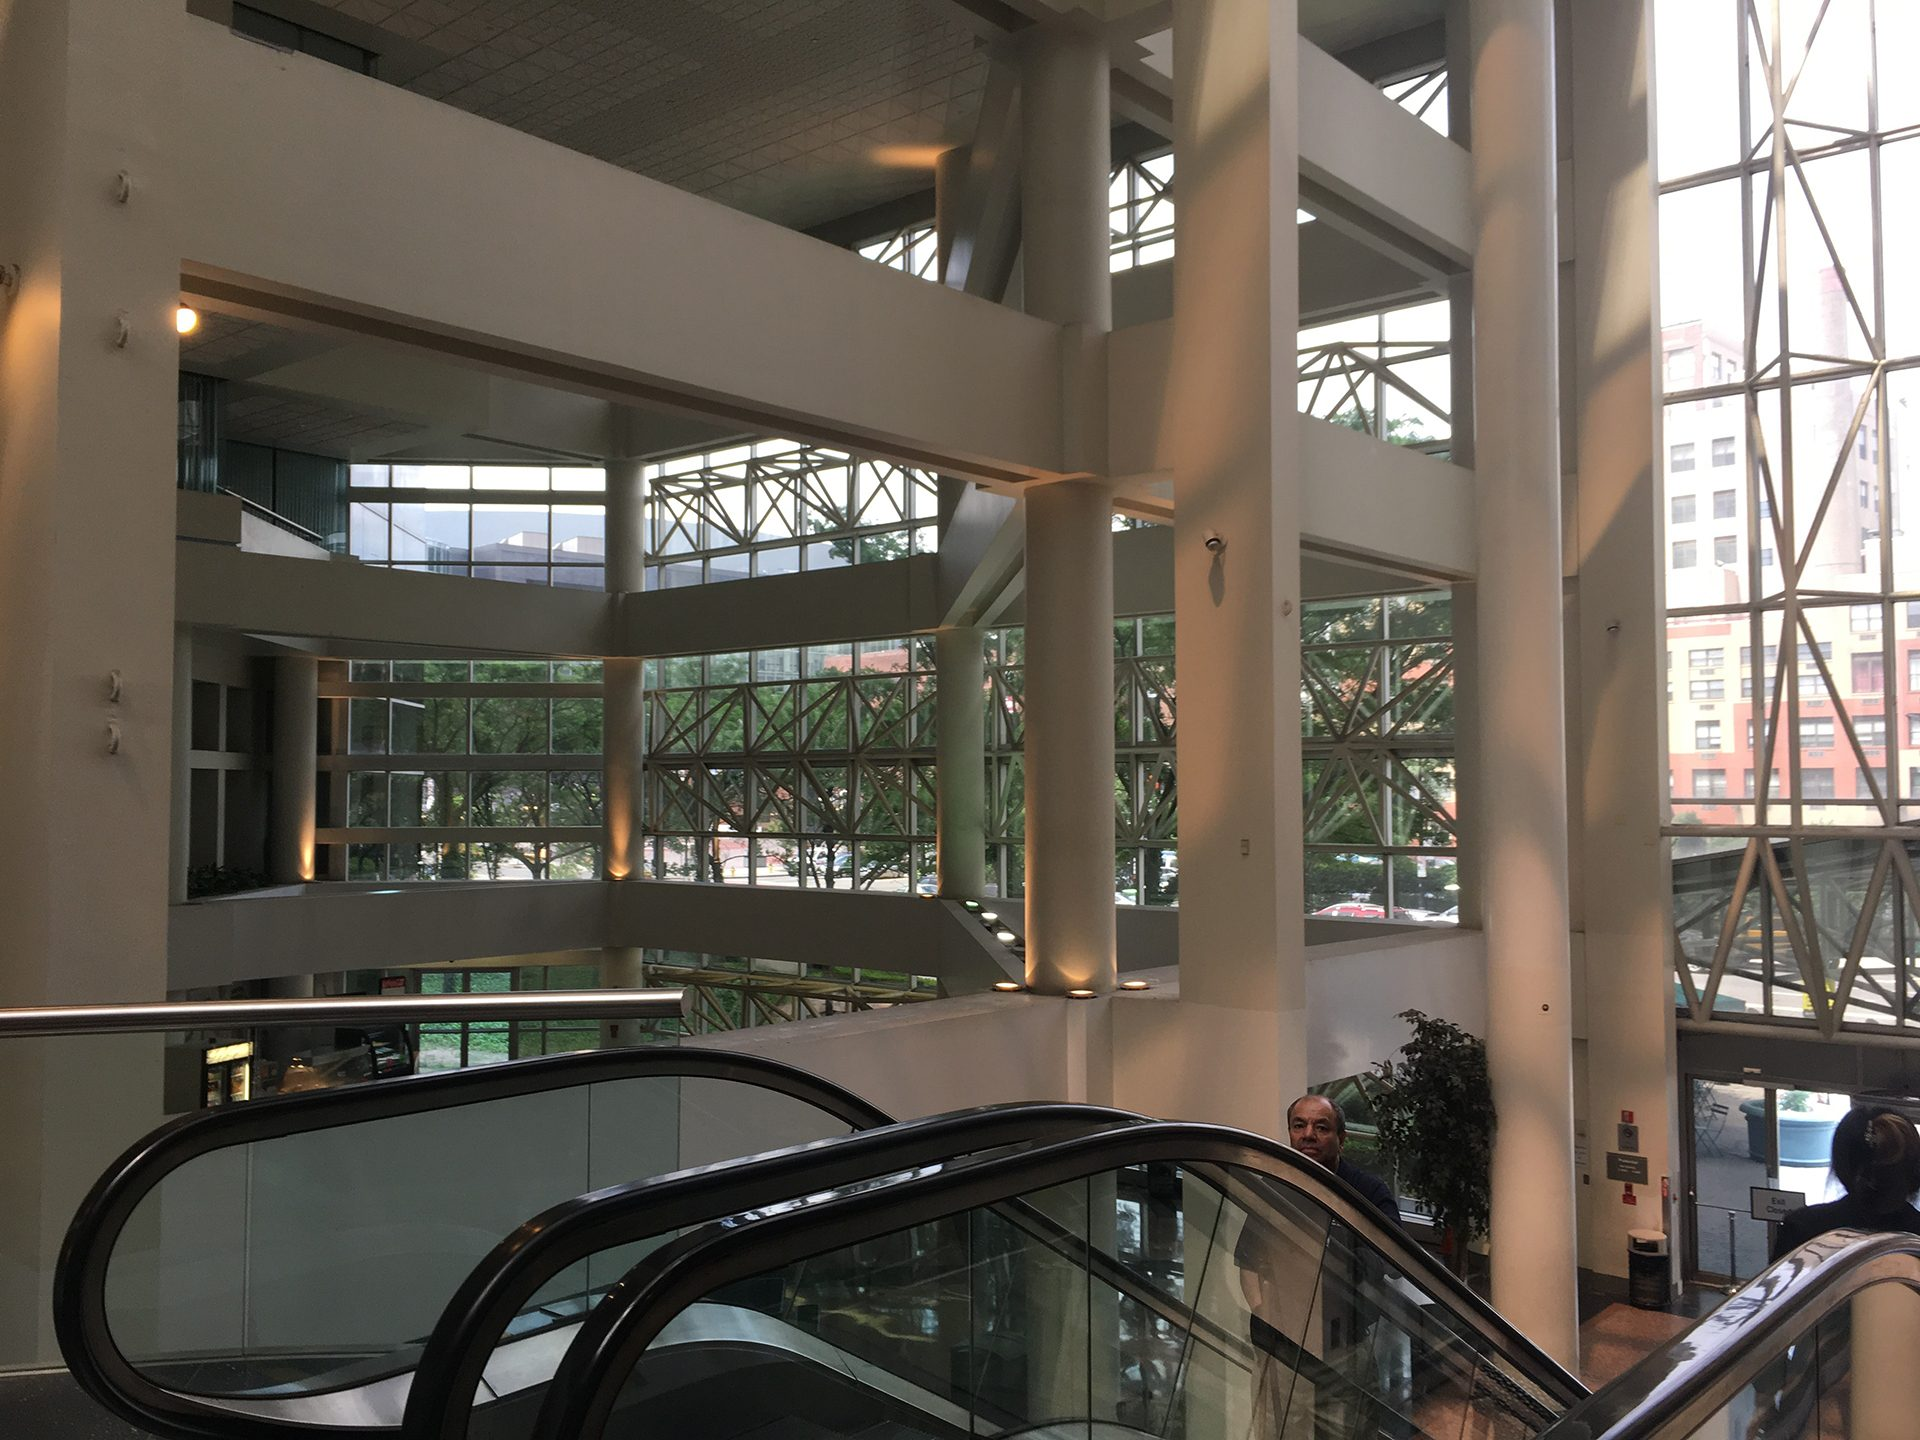 Existing building lobby at 4 Gateway Center